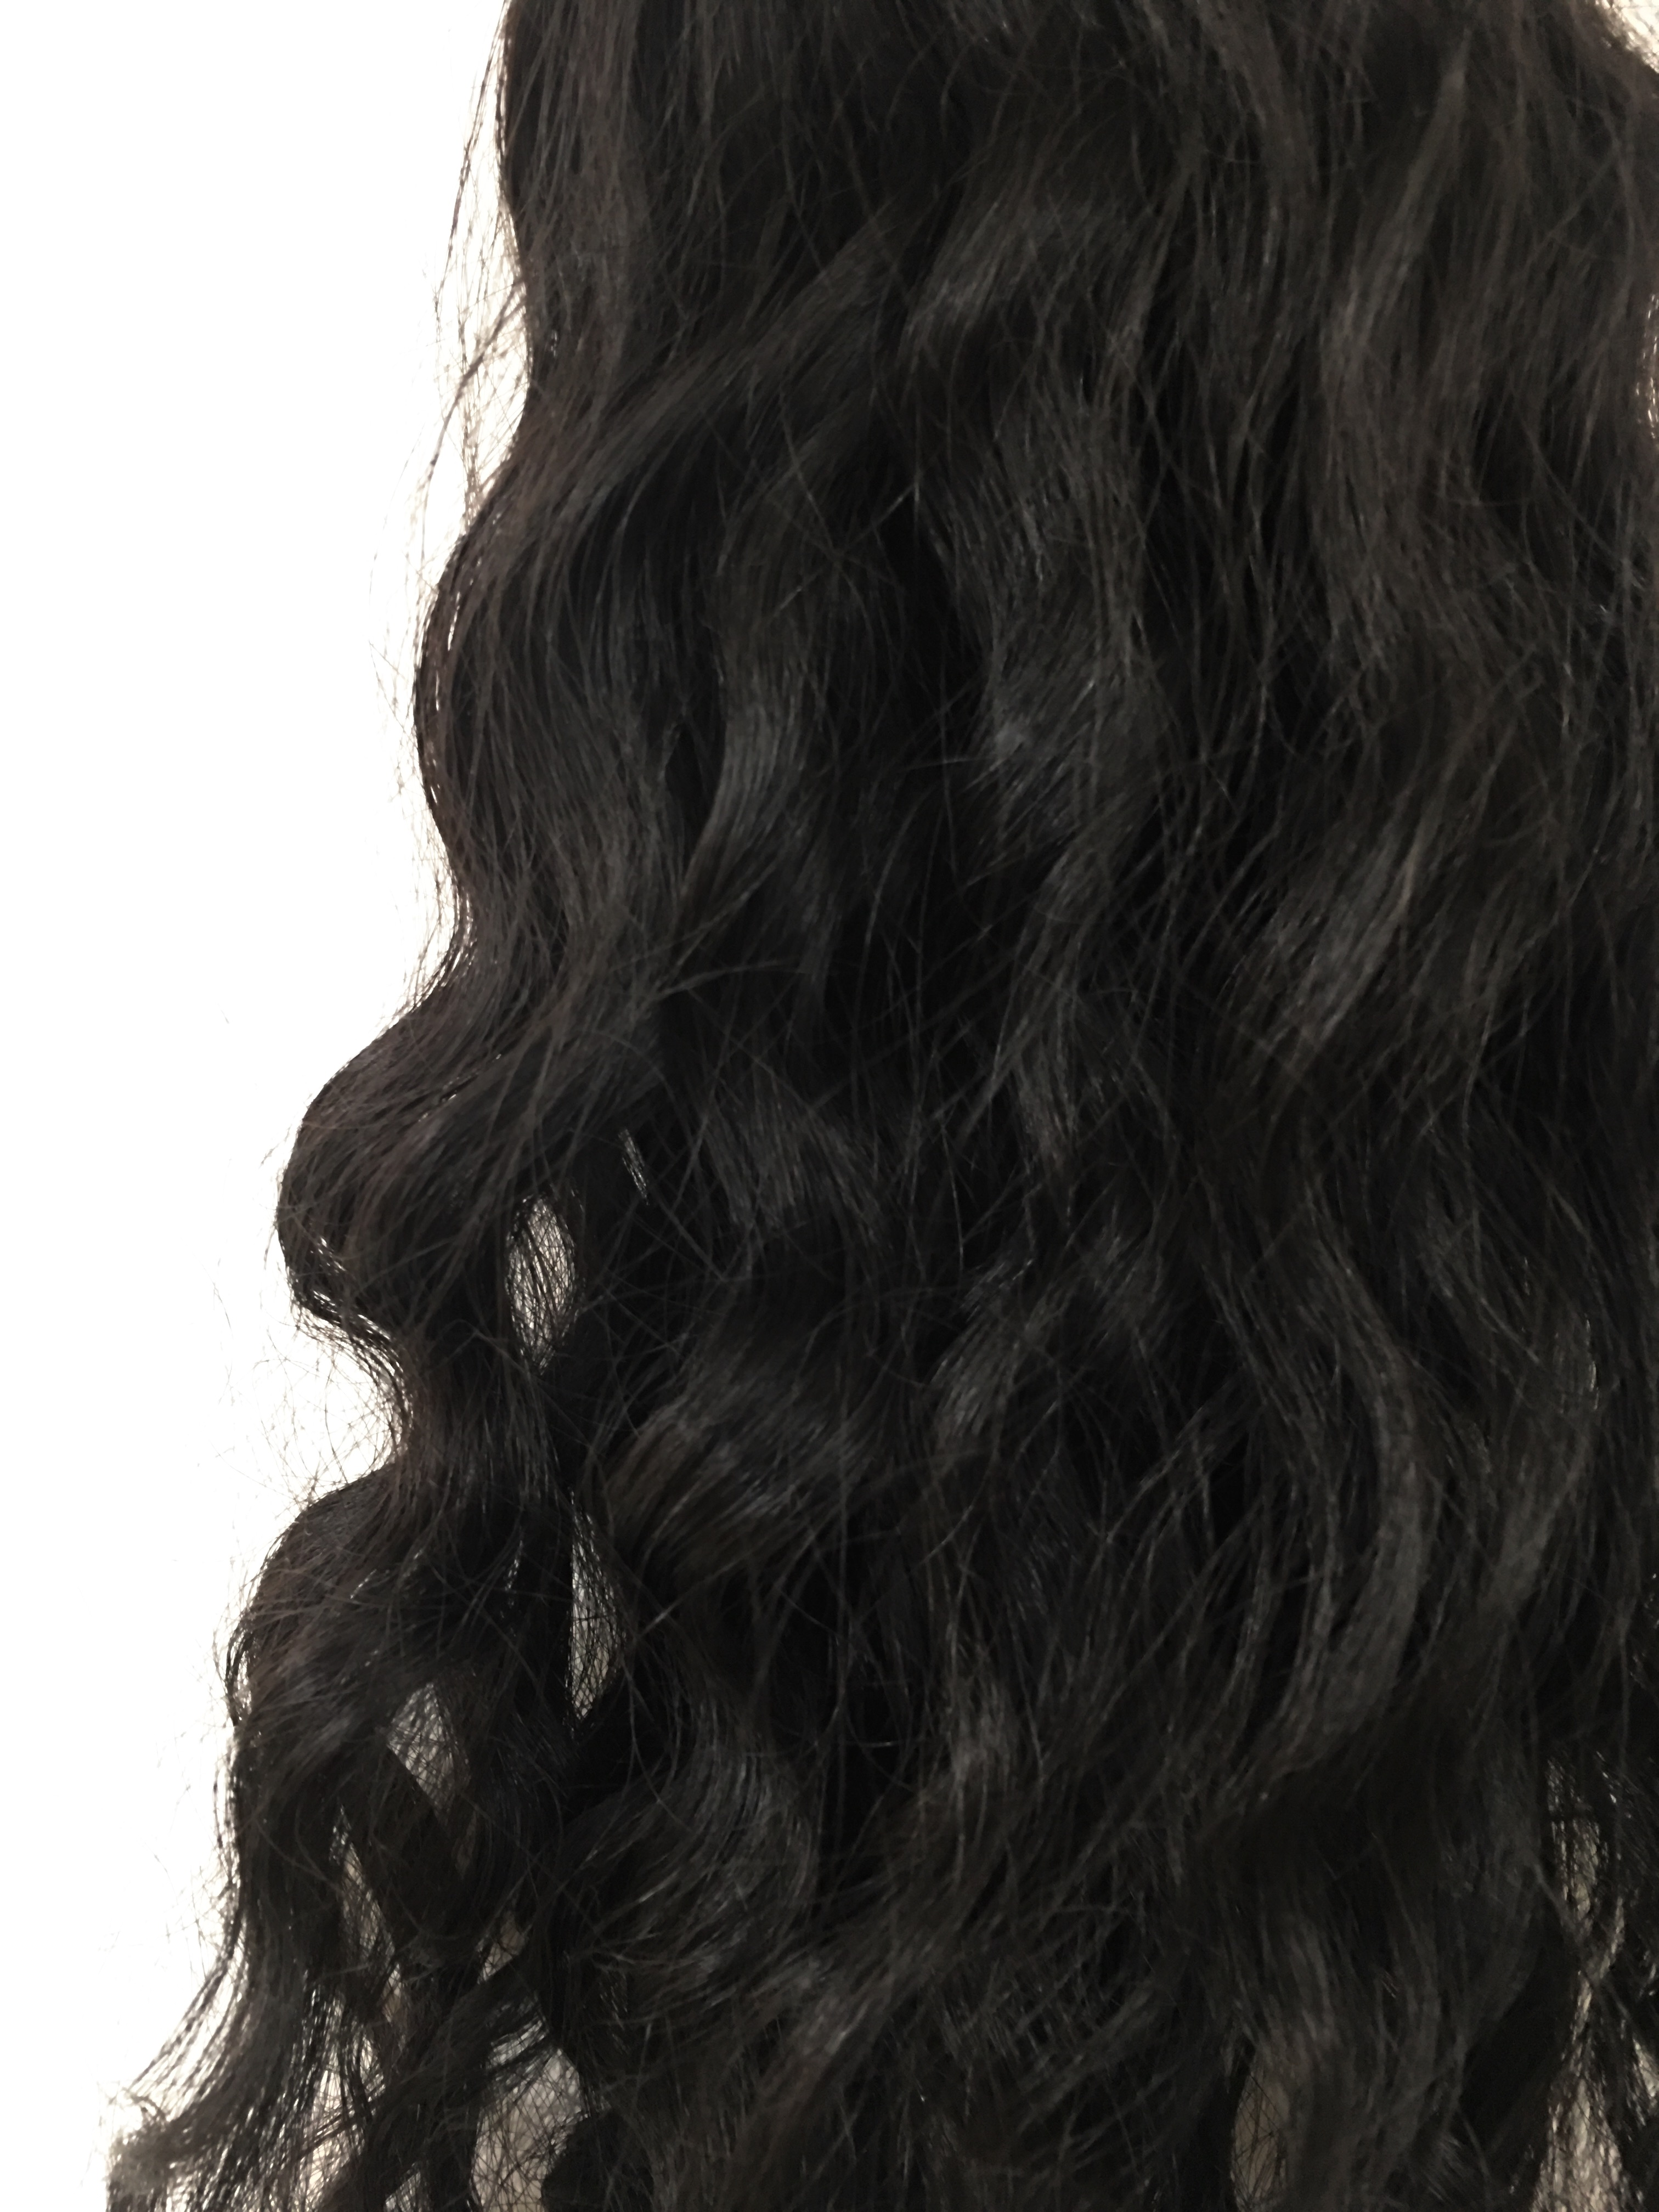 Virgin Uncoloured Brazilian Virgin Remy Human Hair Weft 20inches Curly Wavy or Straight_6